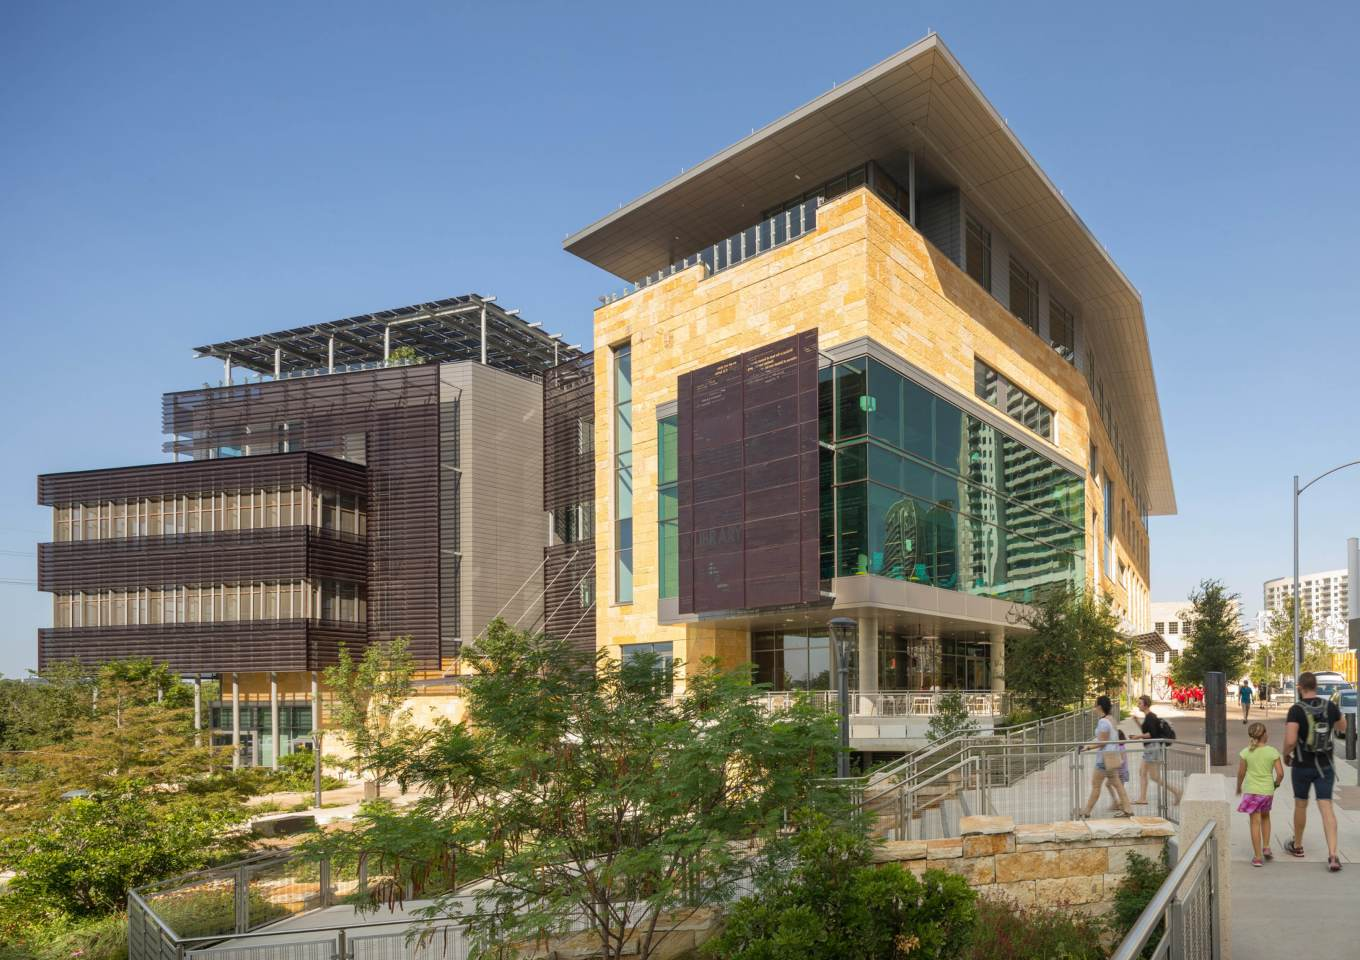 Austin Central Library is located in Texas and was designed by Lake|Flato Architects, in collaboration with Shepley Bulfinch